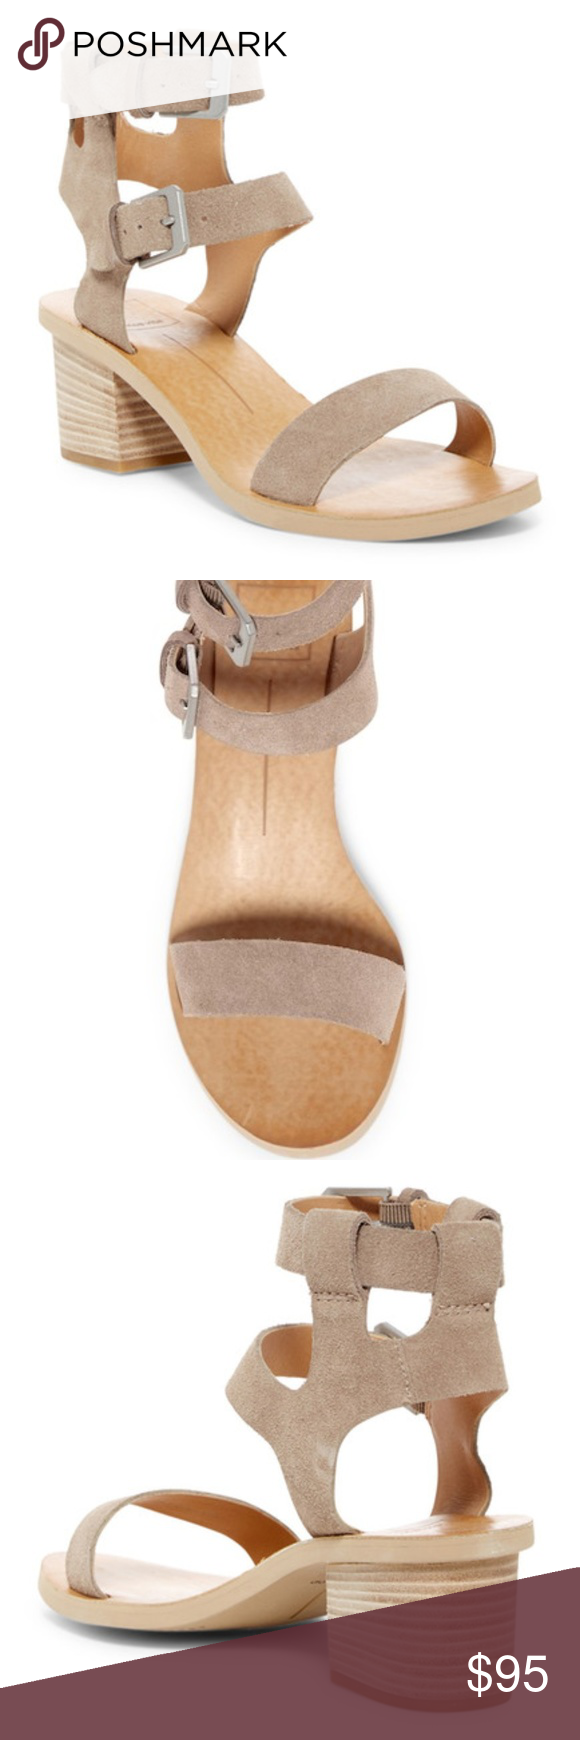 df81fc3a190 Dolce Vita West Dual Strap Suede Taupe Sandals Dolce Vita Dual West Suede  Taupe Sandals Heels